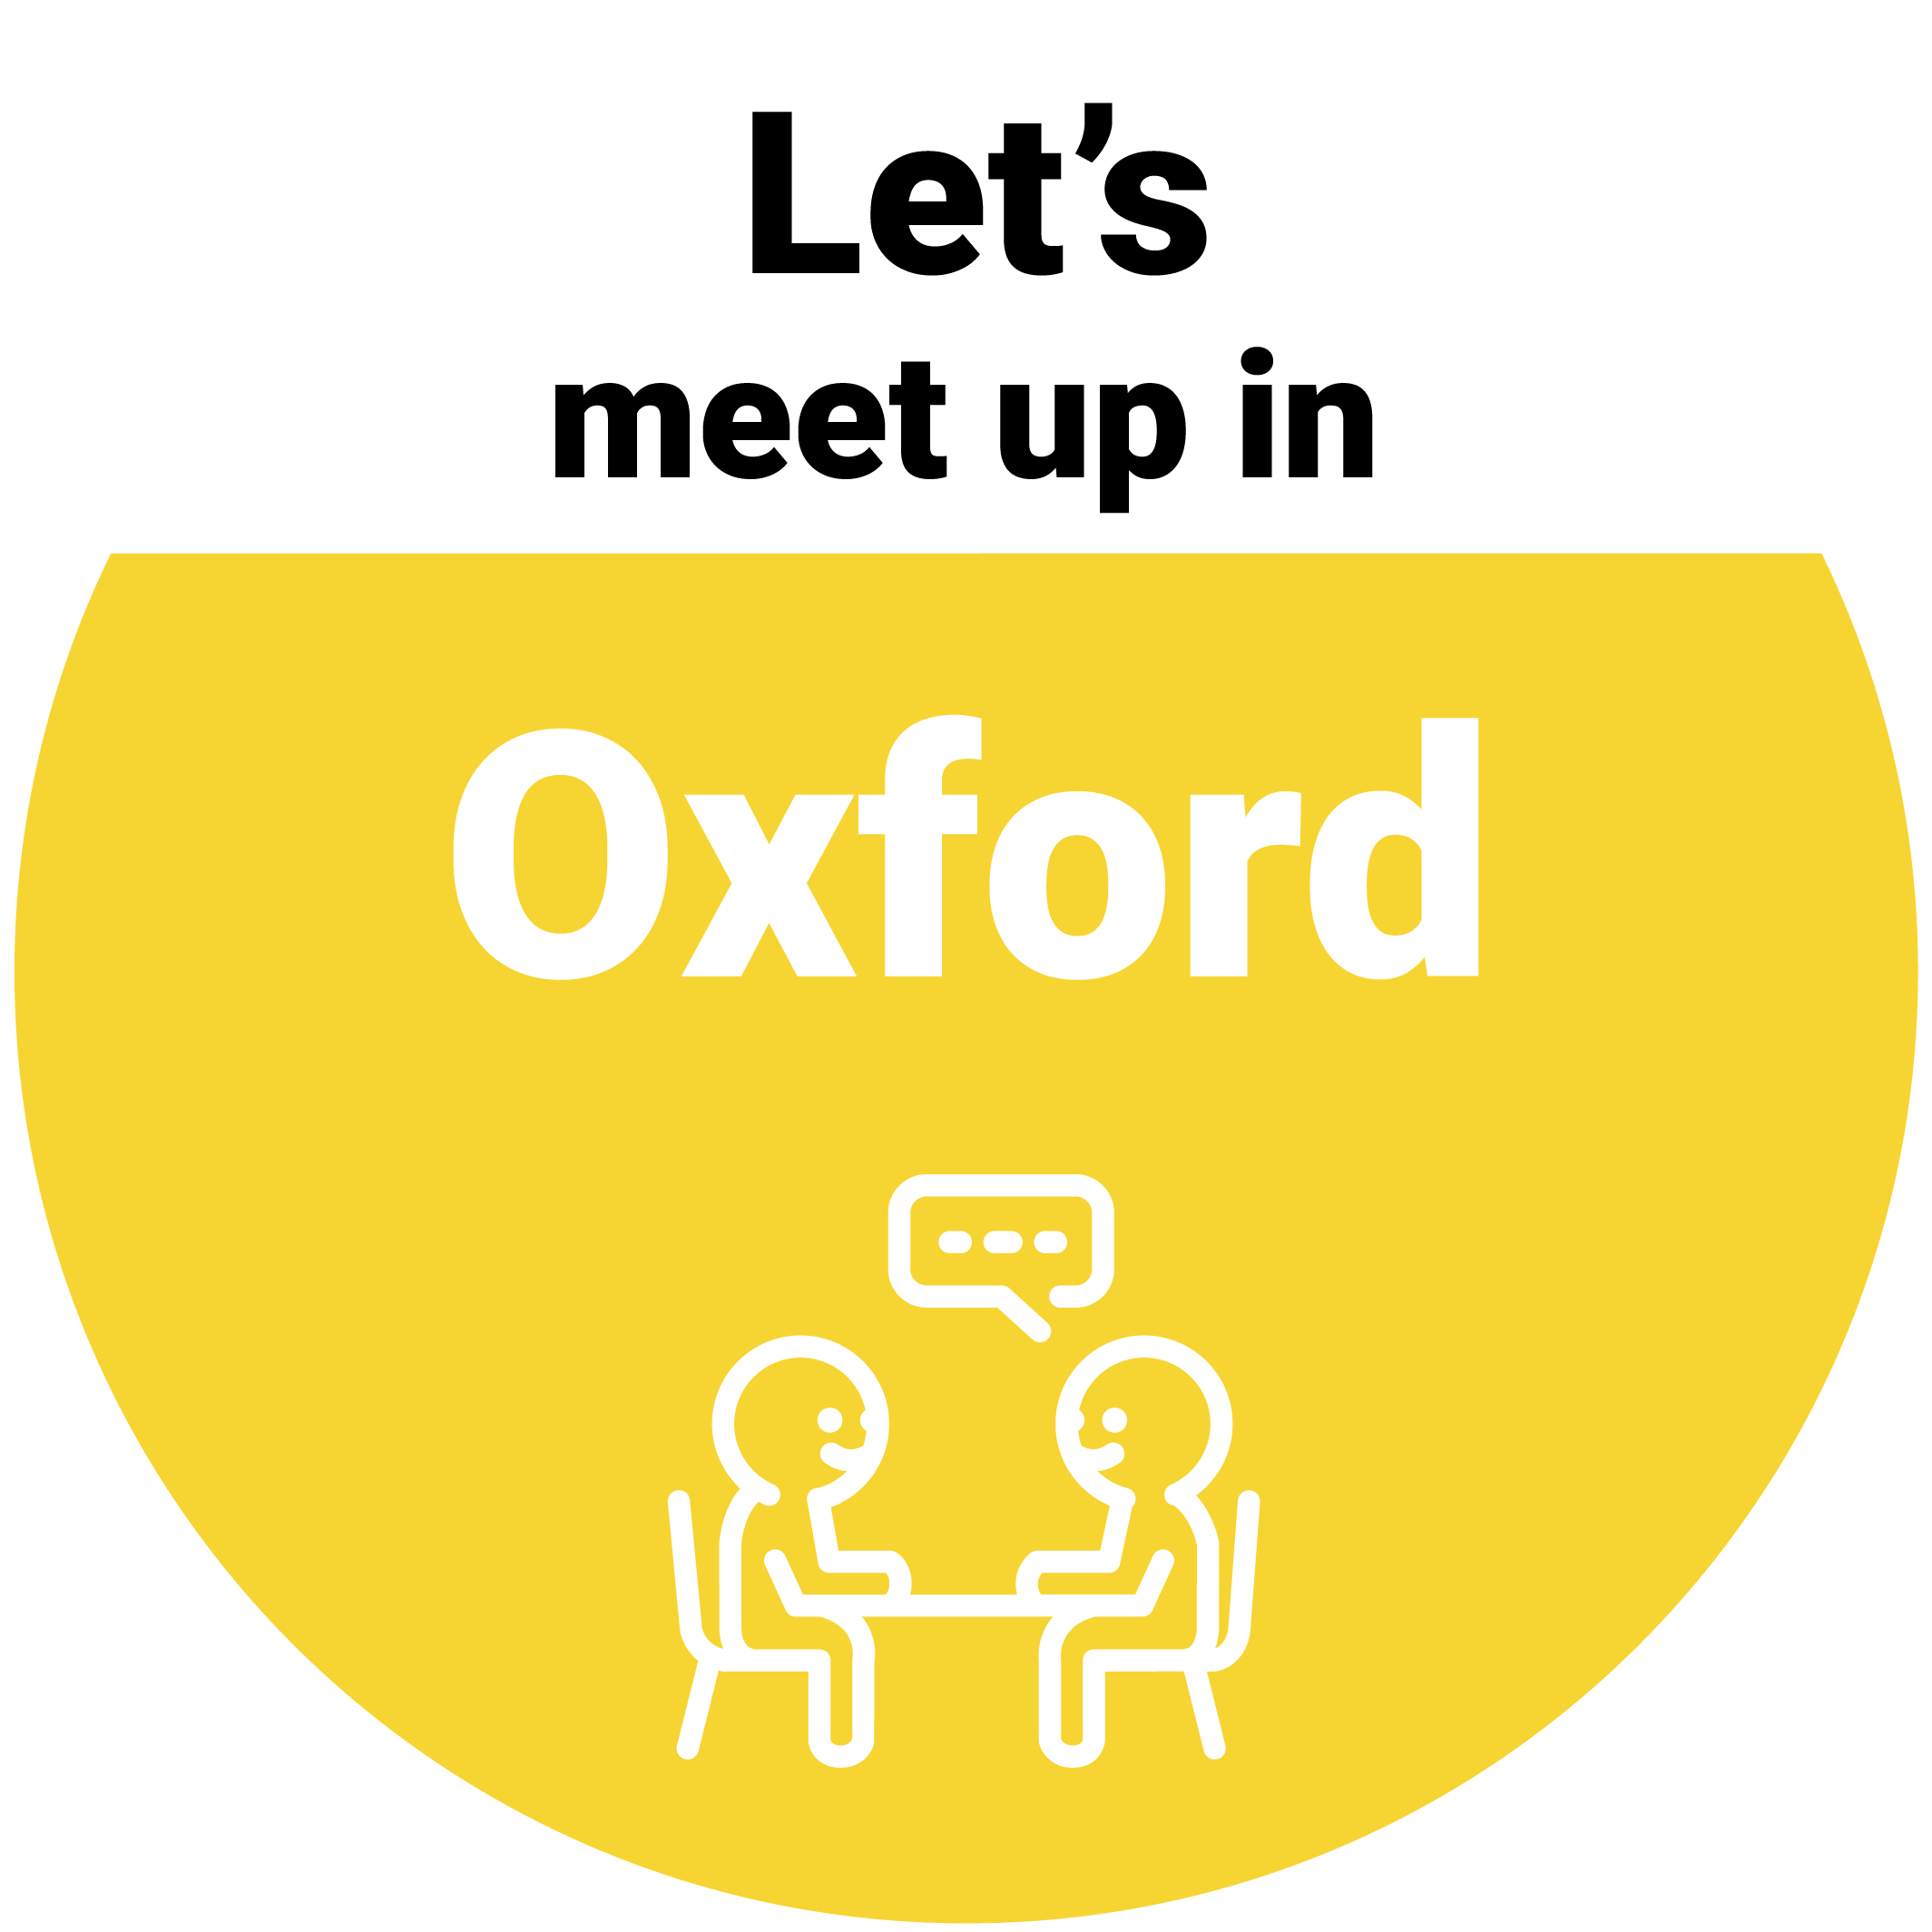 Lets meet in Oxford